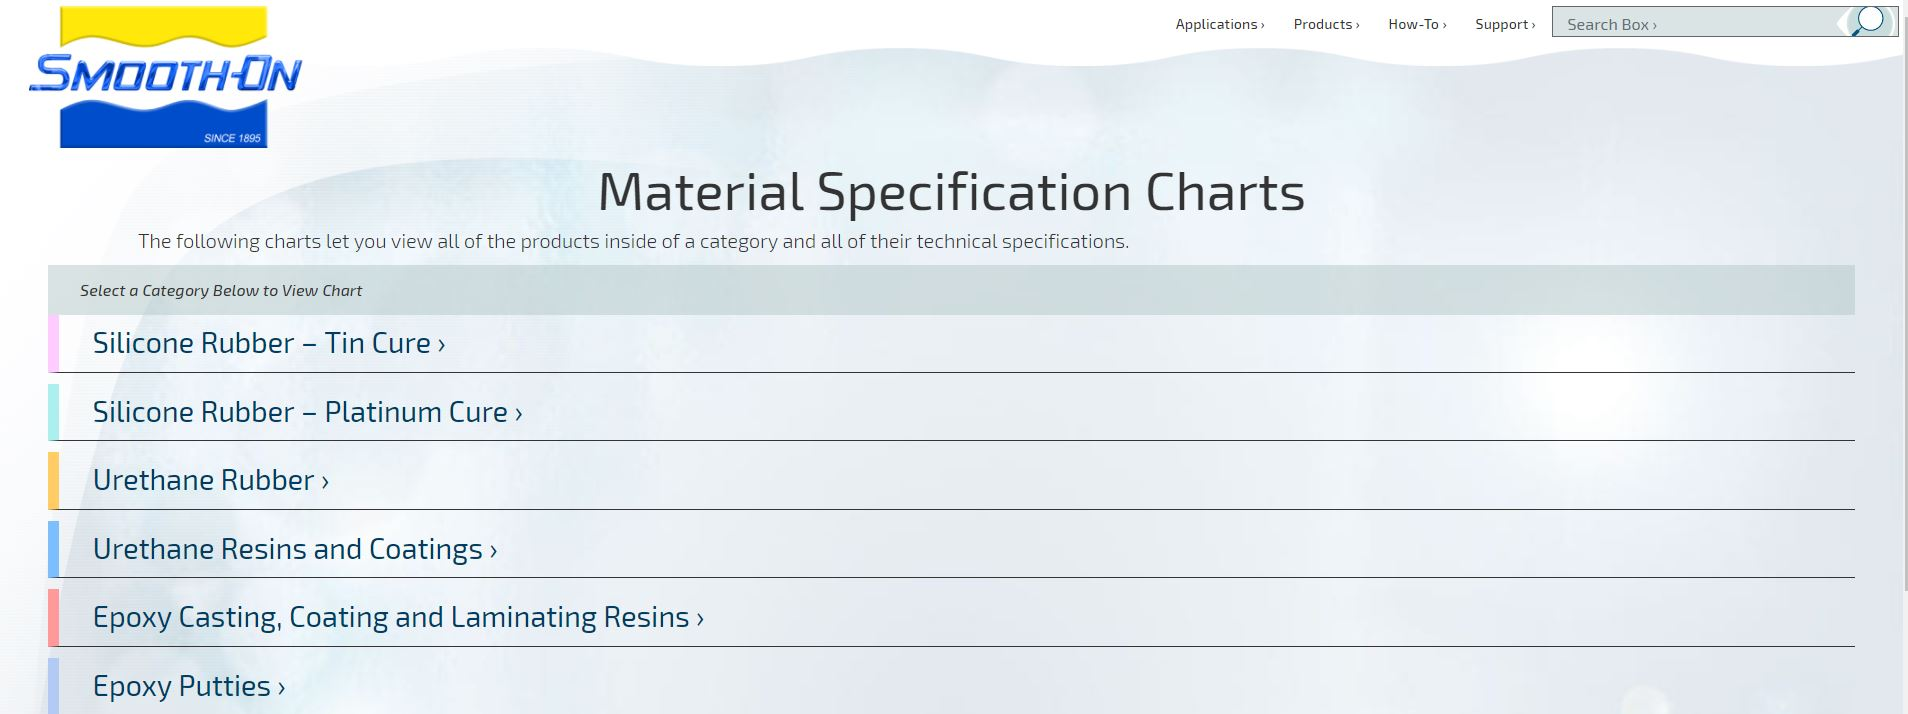 New Web Tool - Interactive Smooth-On Material Specification Charts